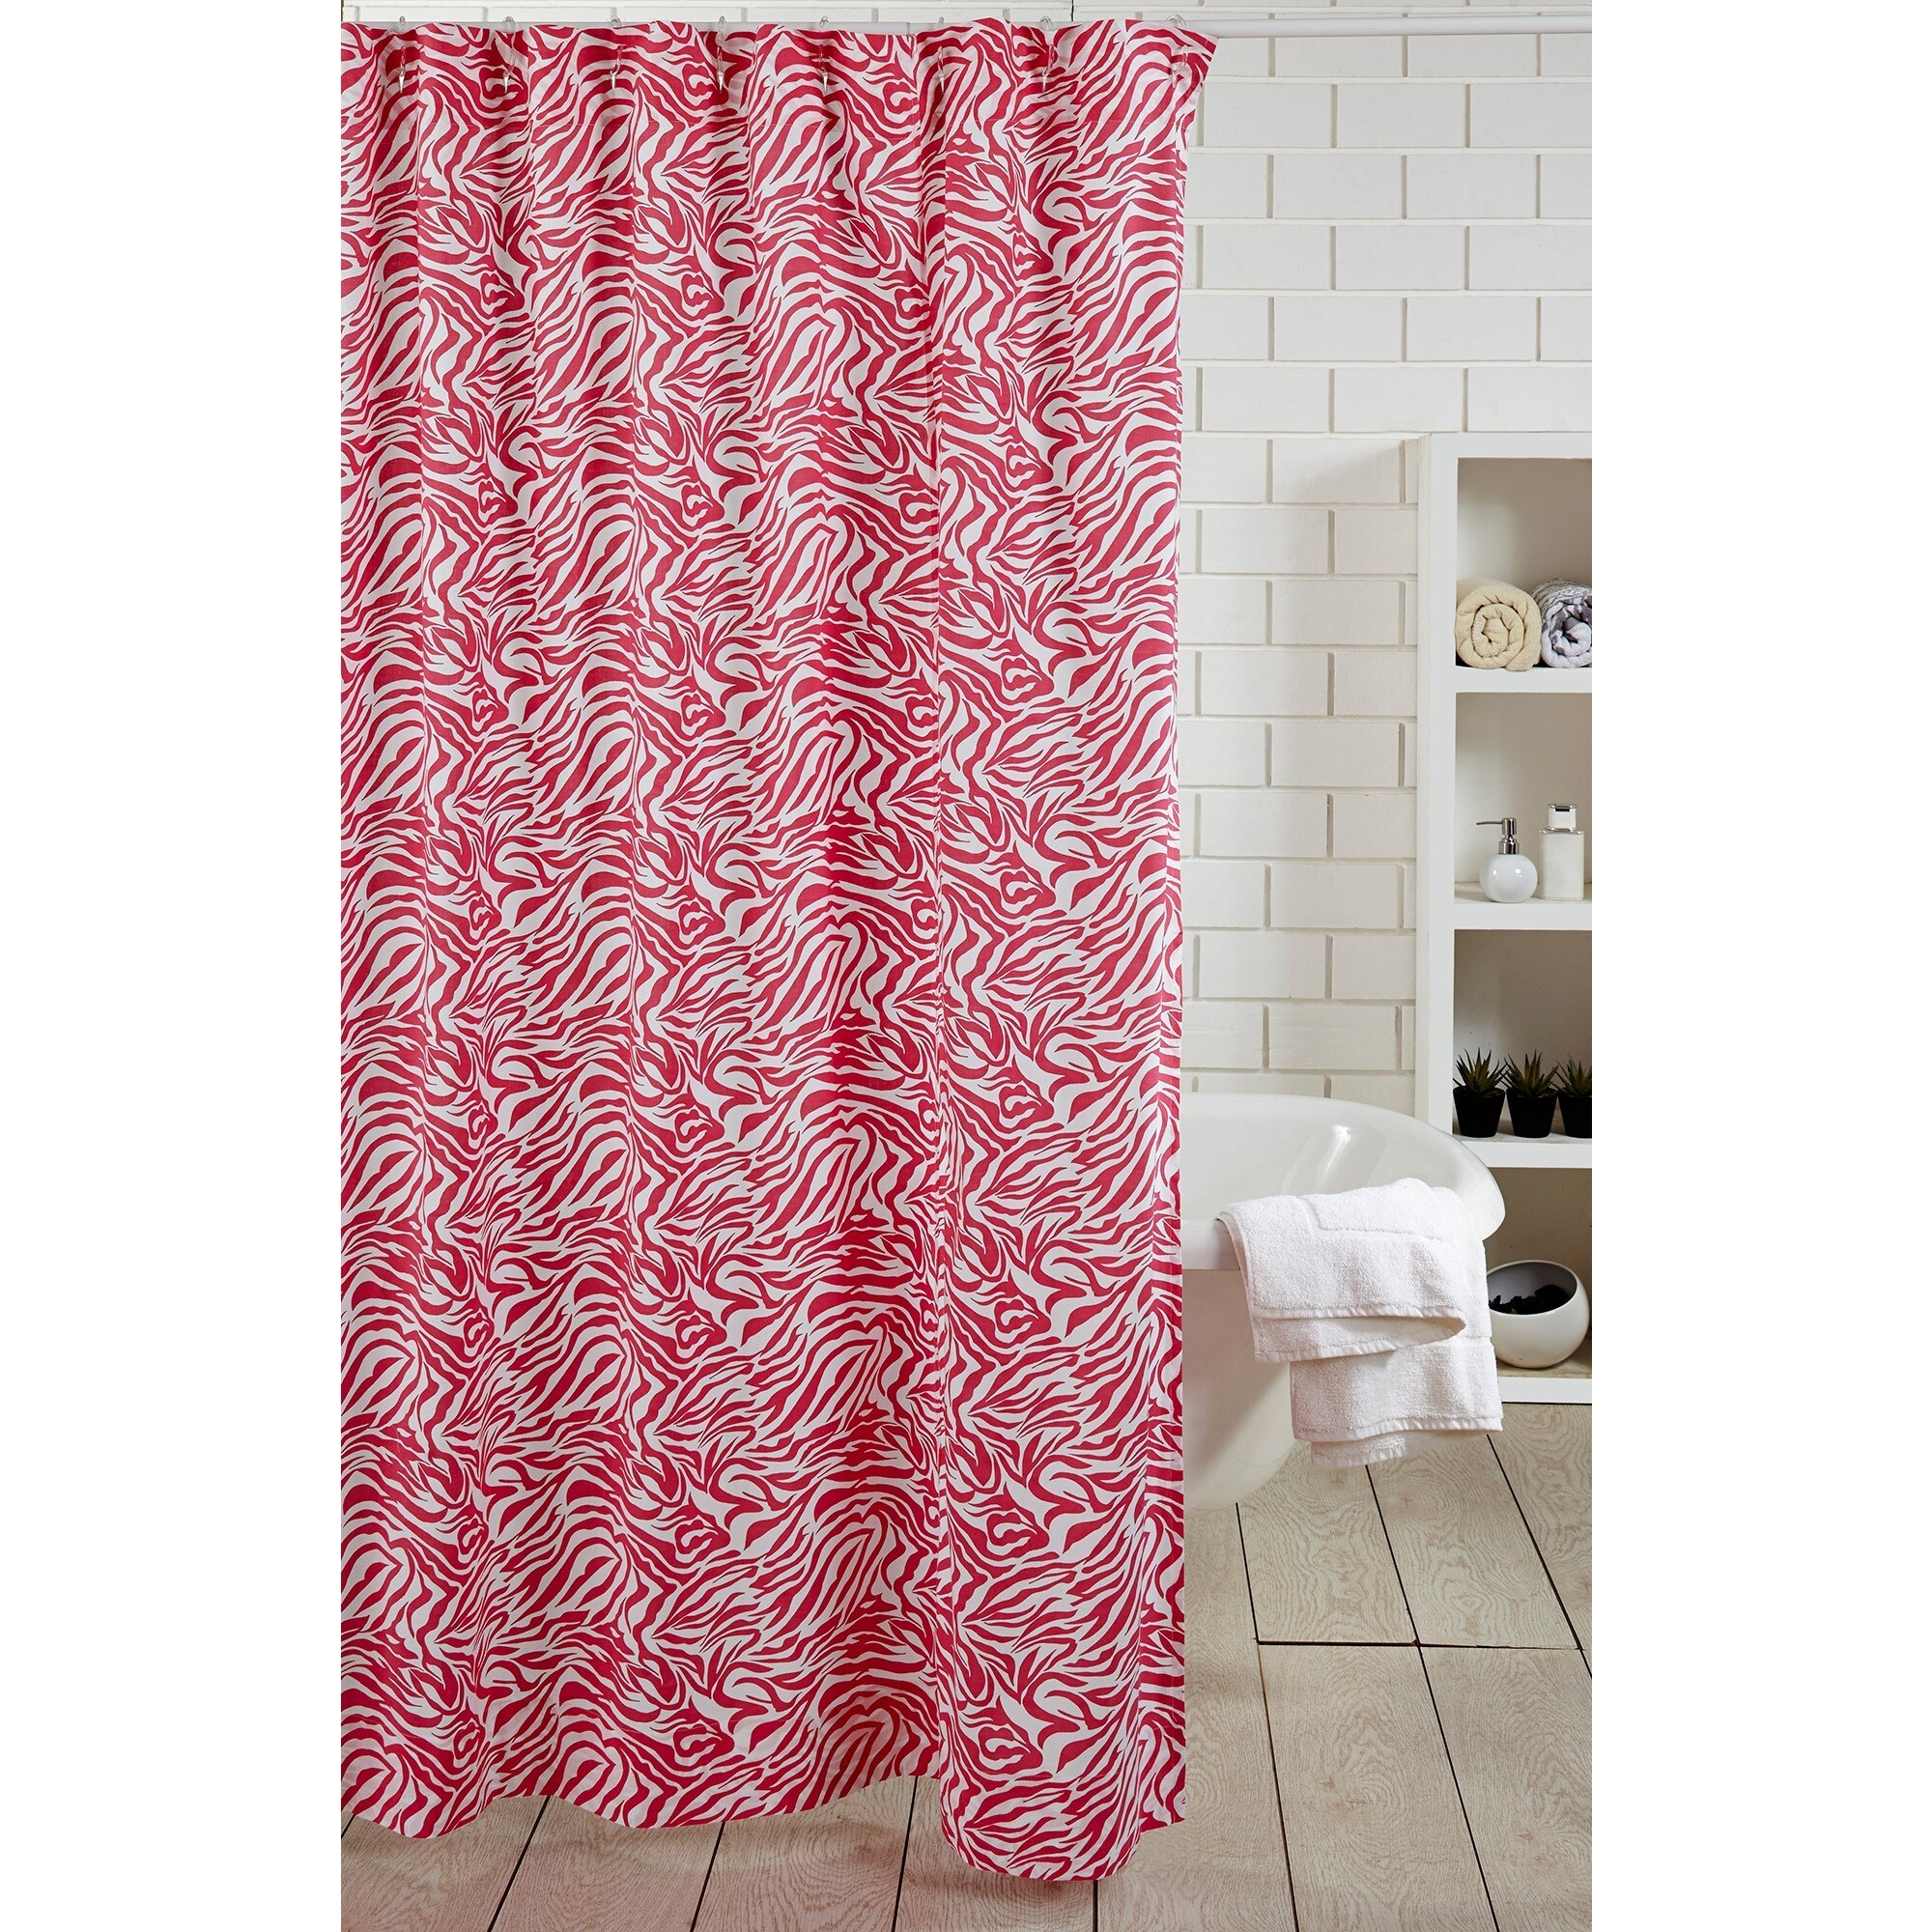 Pink Zebra Shower Curtain - Free Shipping Today - Overstock.com ...